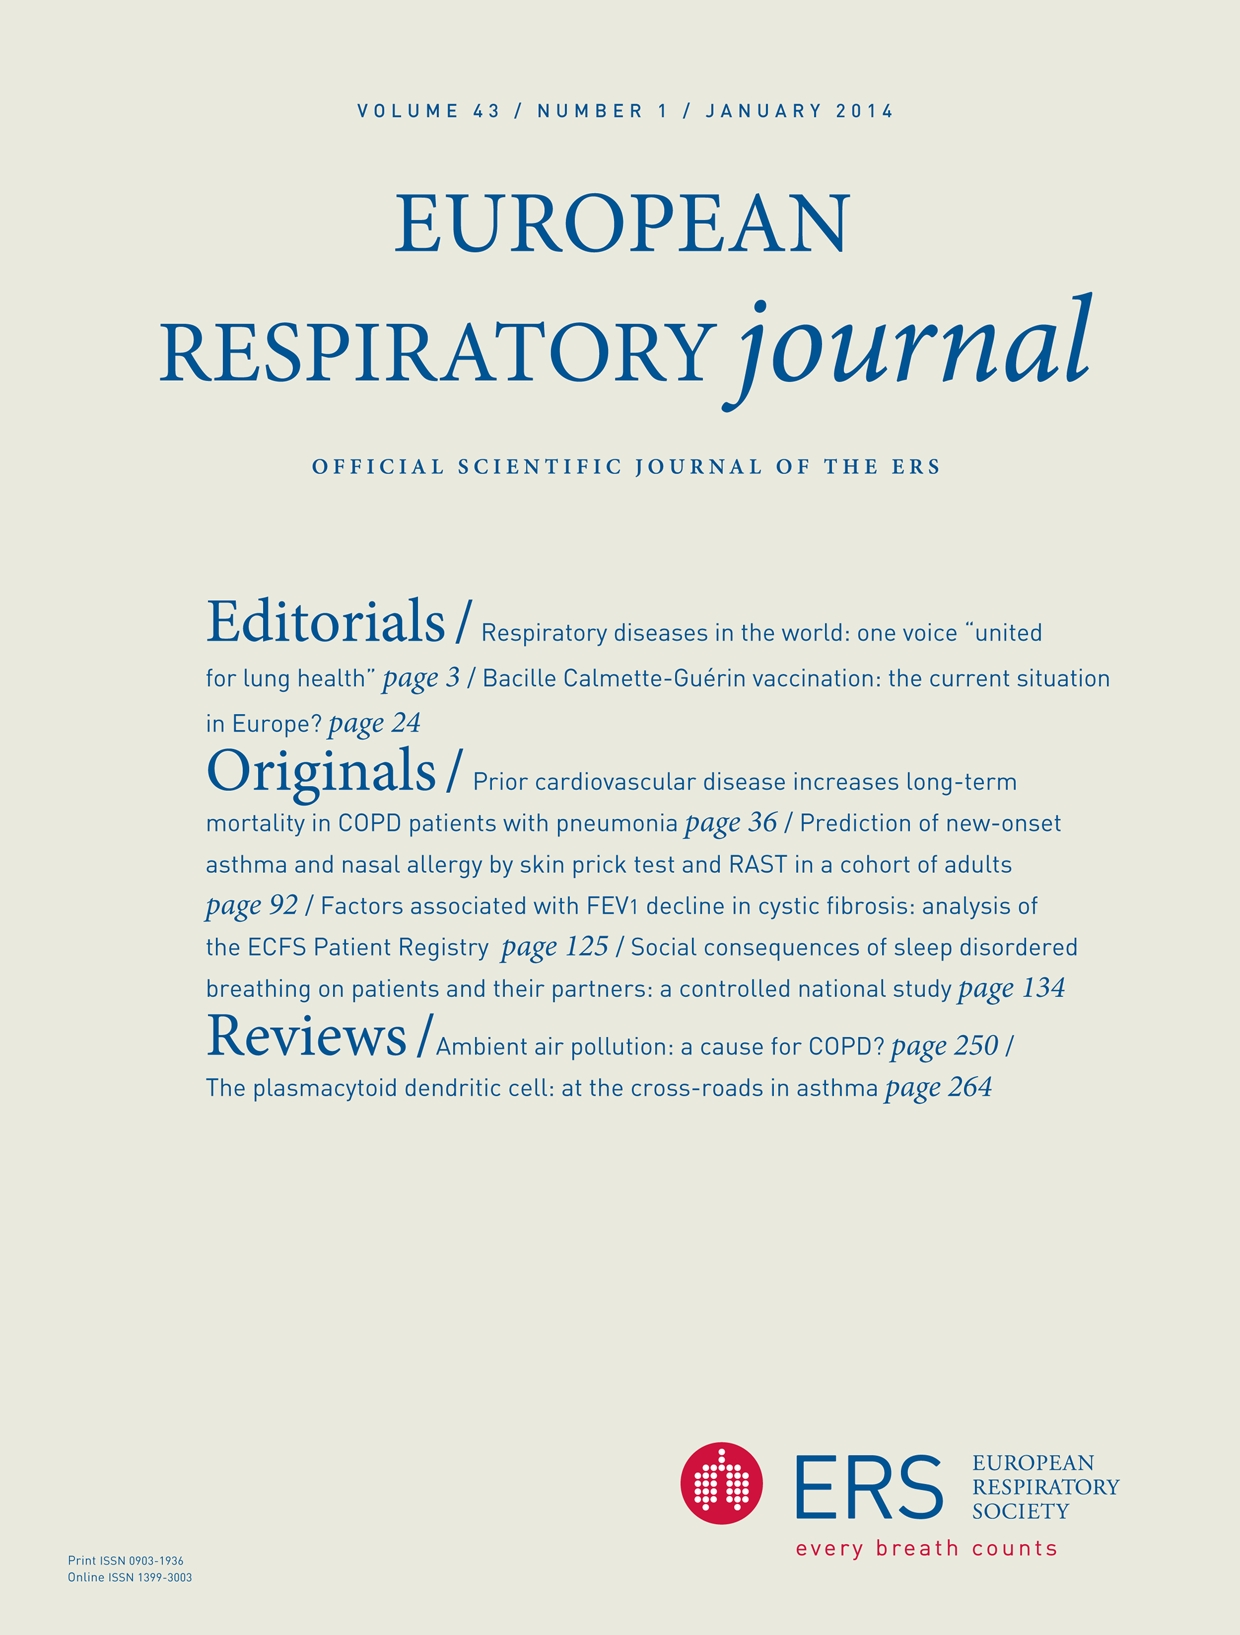 017 Essay On Respiratory Diseases Example Cover Fascinating Full